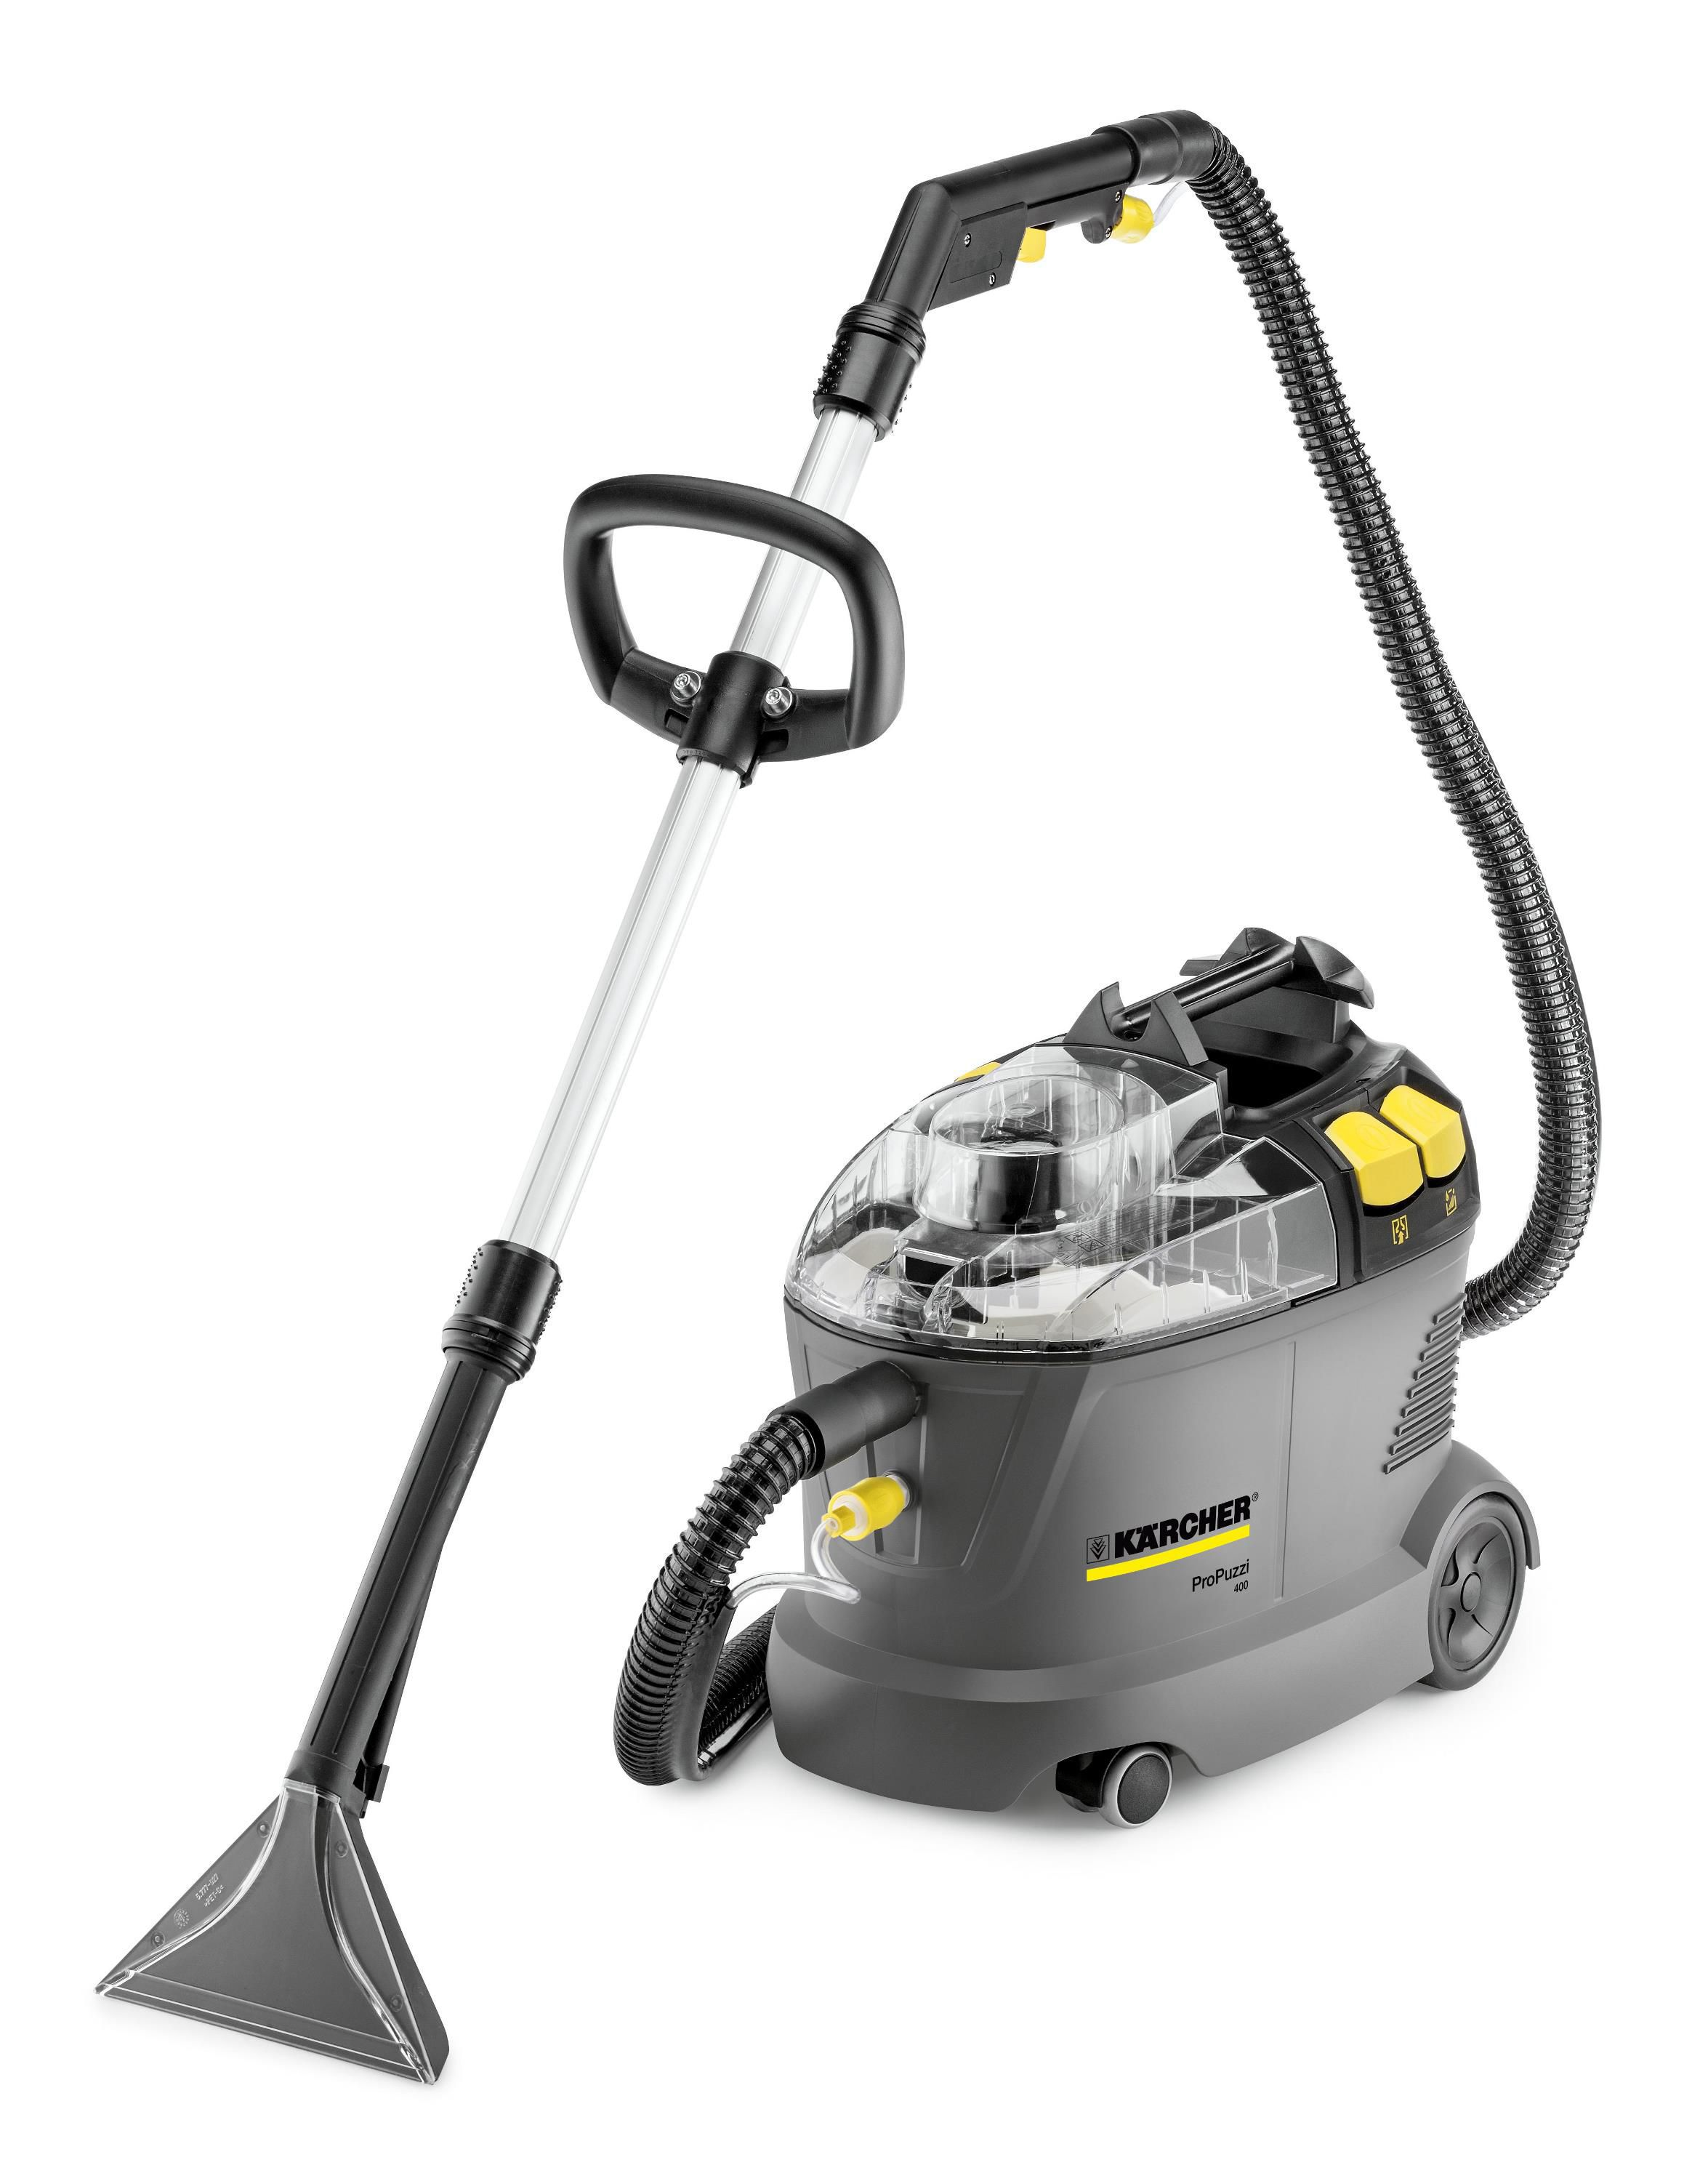 Karcher Pro Puzzi Carpet Cleaner Corded Spray Extraction